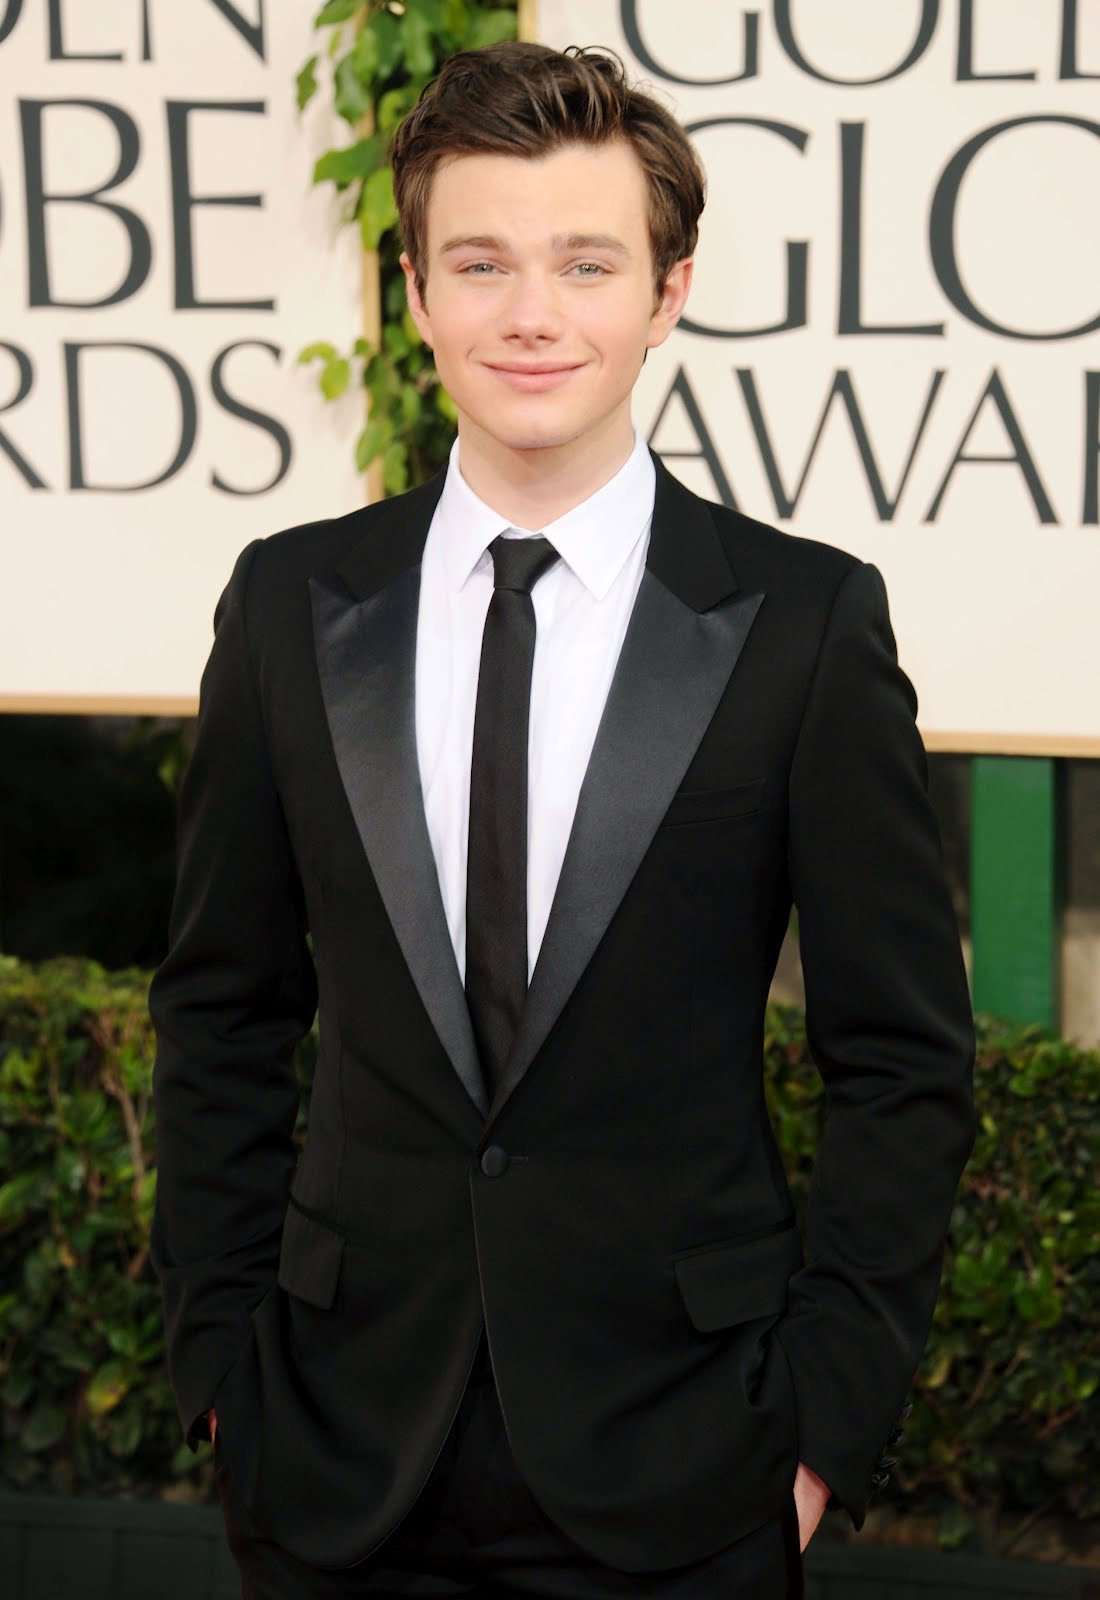 Ed Bernard Wallpapers Carrie Bernard chris colfer wallpaper